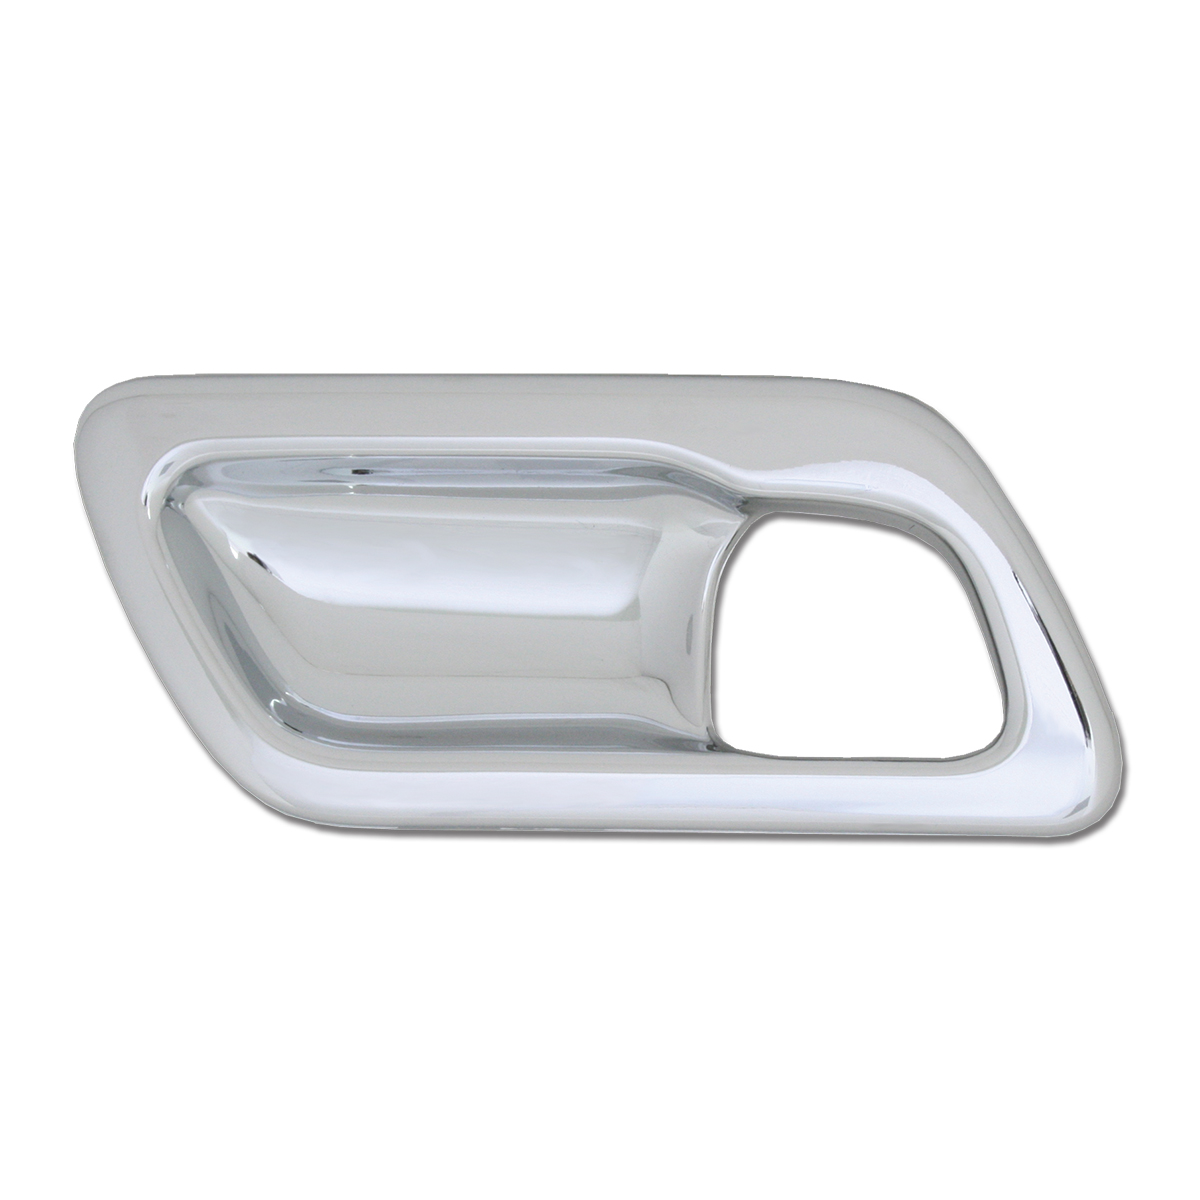 52006 Interior Door Handle Cover for Peterbilt, Passenger Side